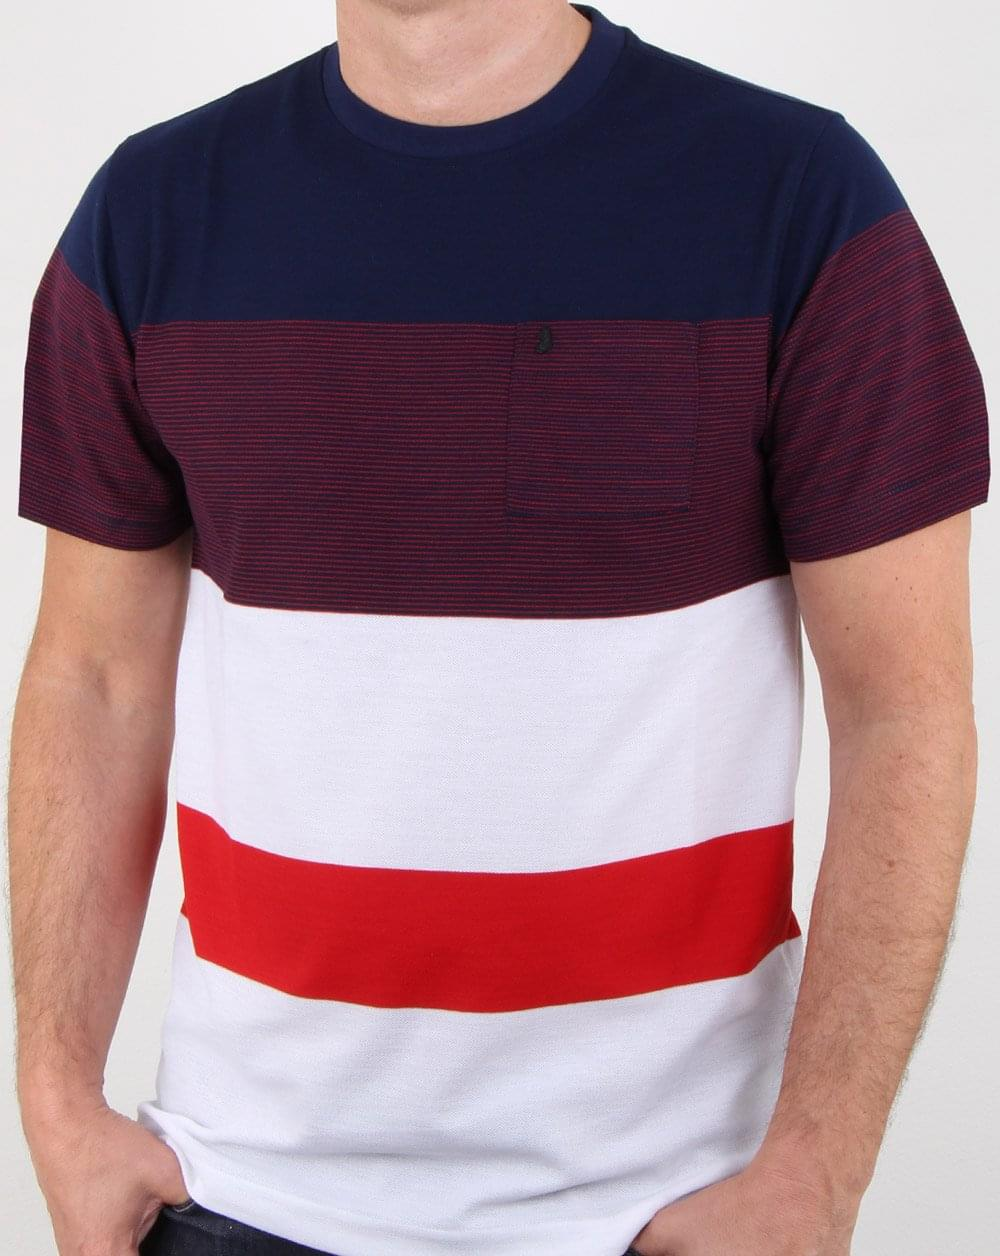 Luke Toto Stripe T Shirt Navy, Mens, Tee, Crew Neck, Lion, Pocket